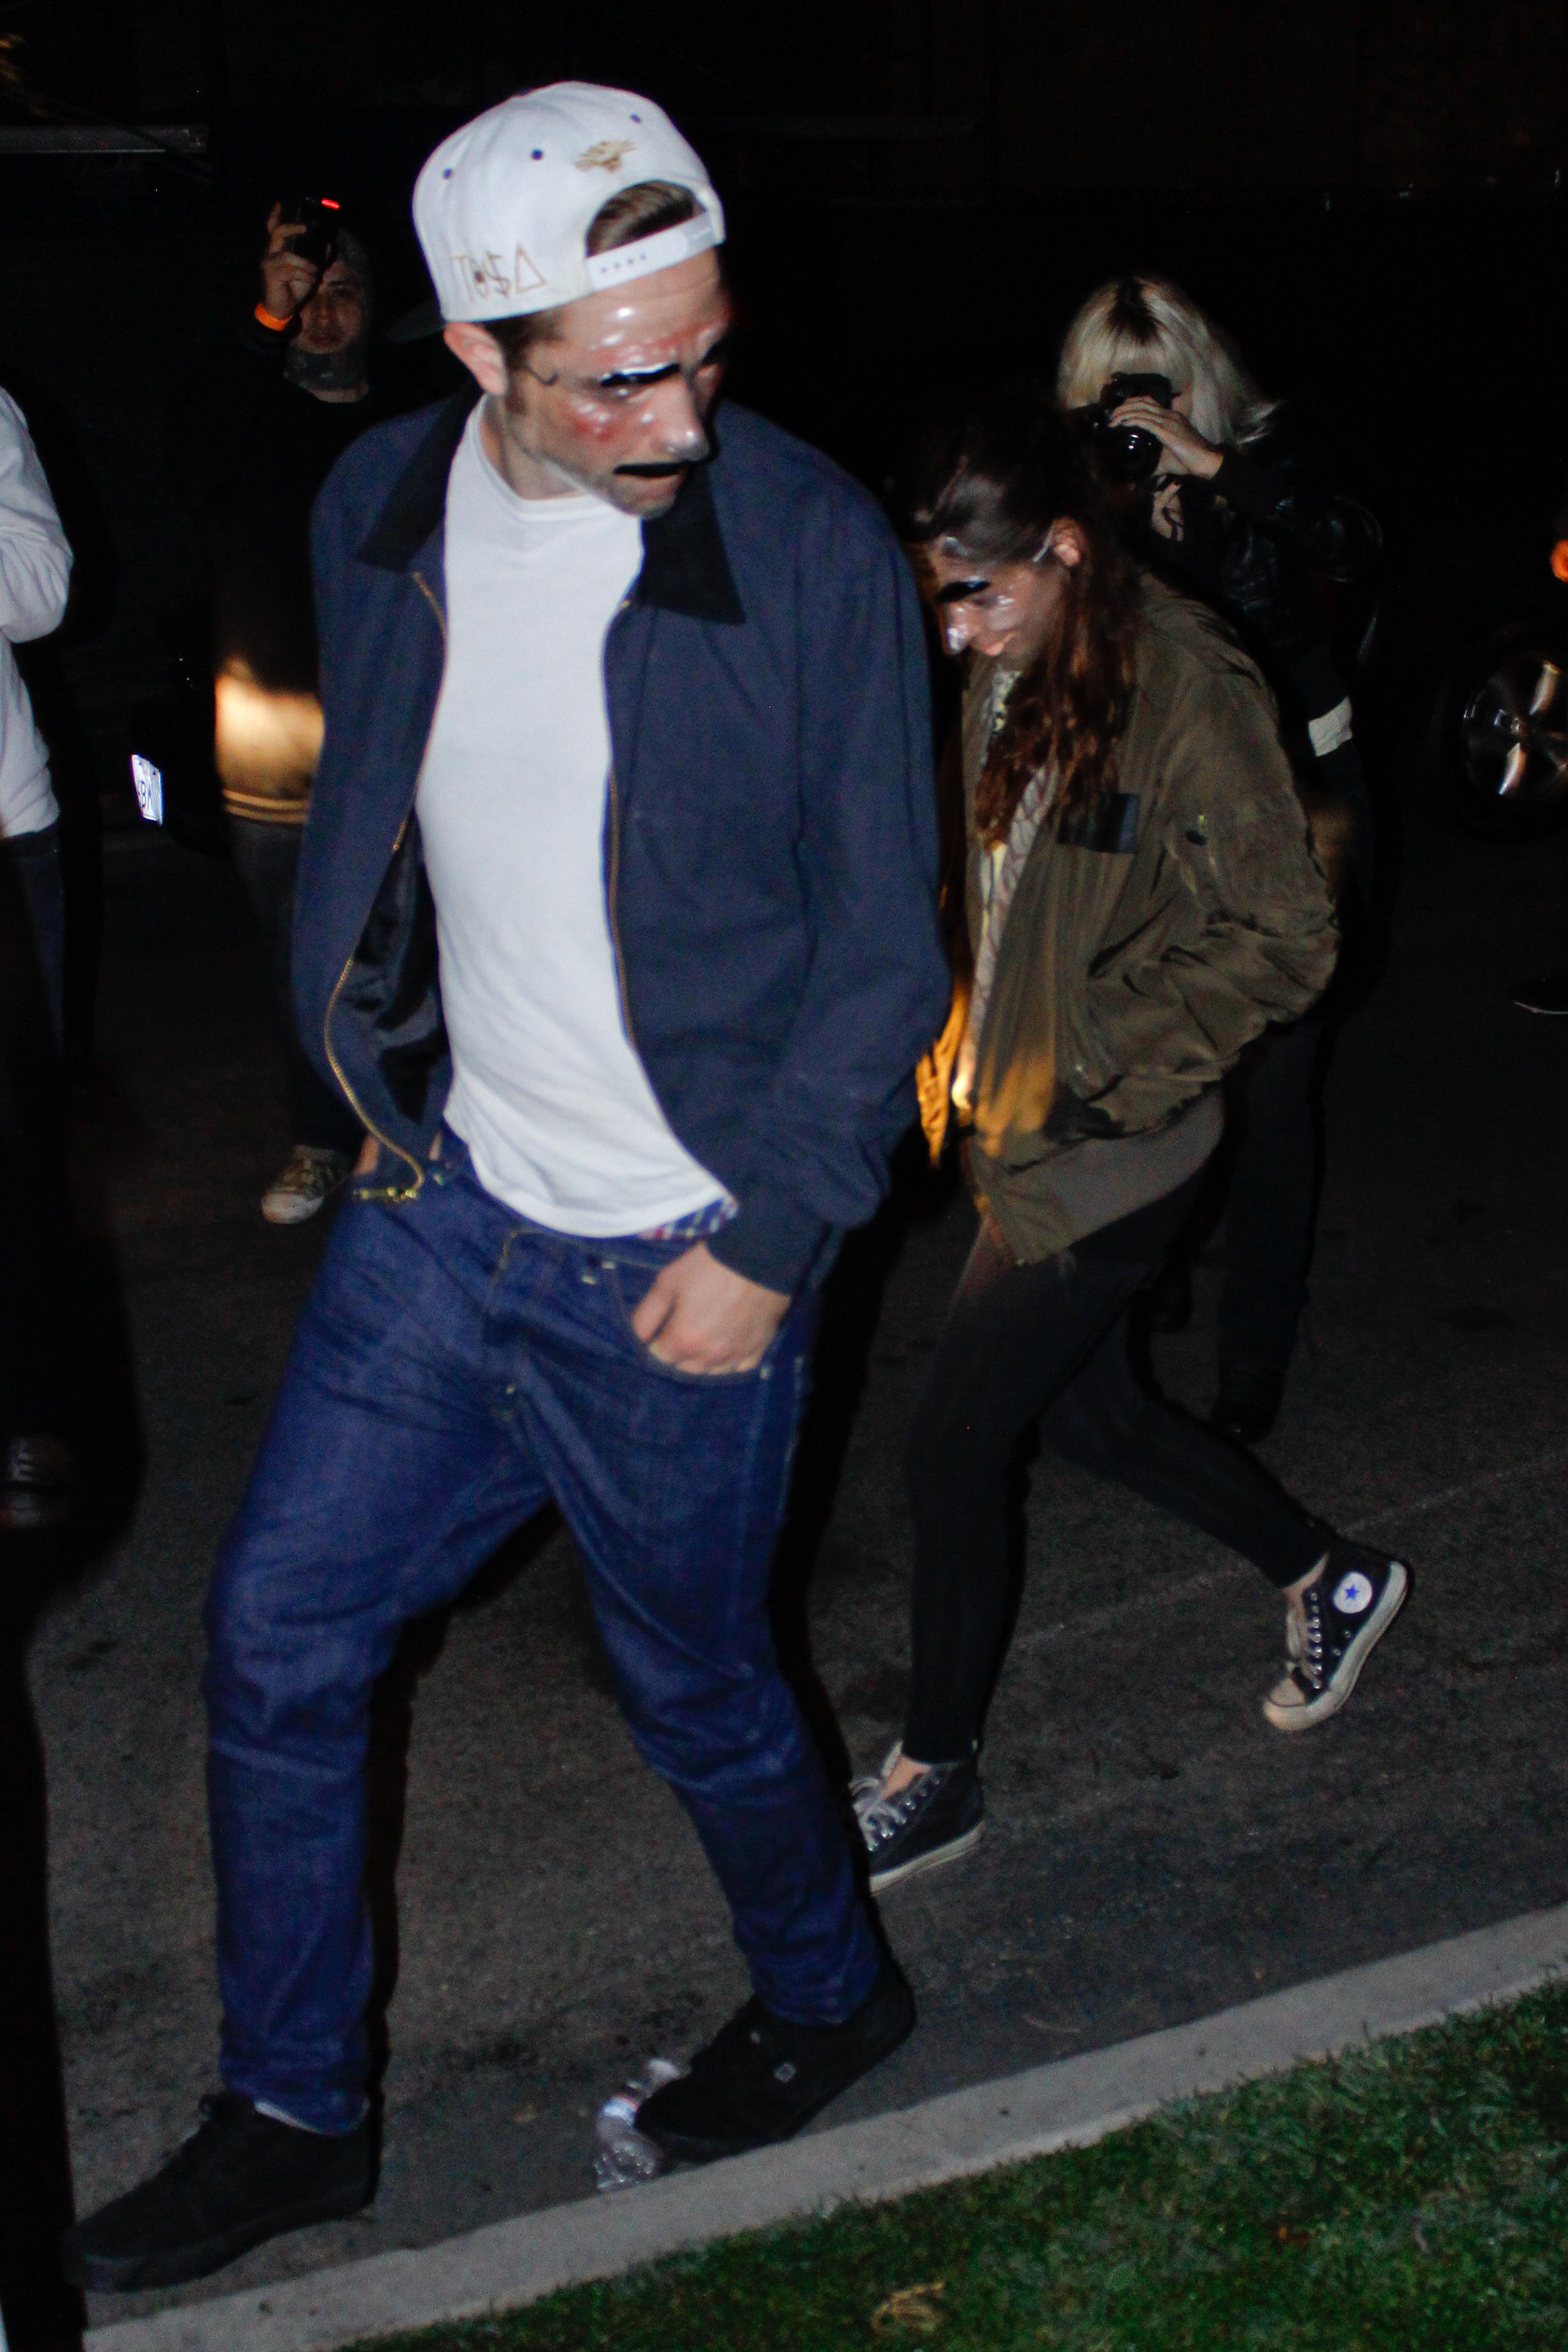 Are rob and kristen dating again after widowed singles with kids